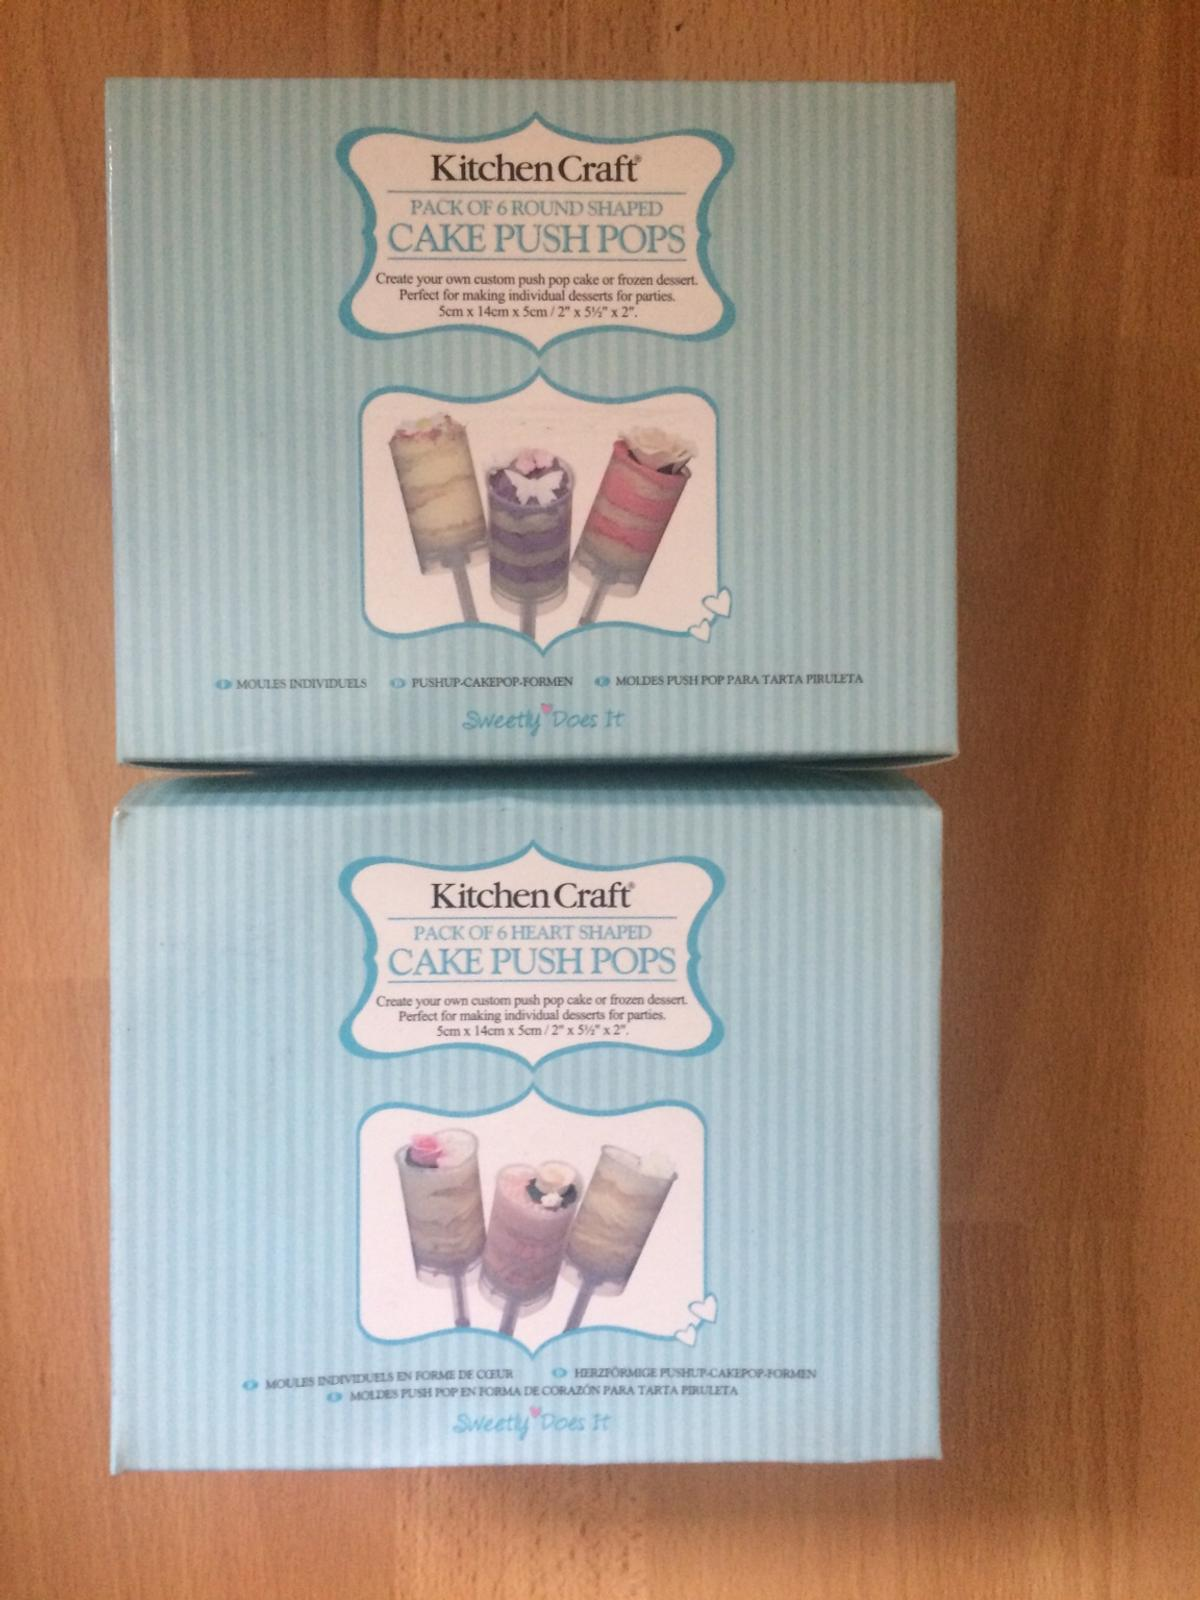 Cake Push Pops 1 x 6 Heart Shaped Push Pops. 1 x 6 Round Shaped push pops. Brand new.  Collection S64 Area. Can post for additional post & packing fees.